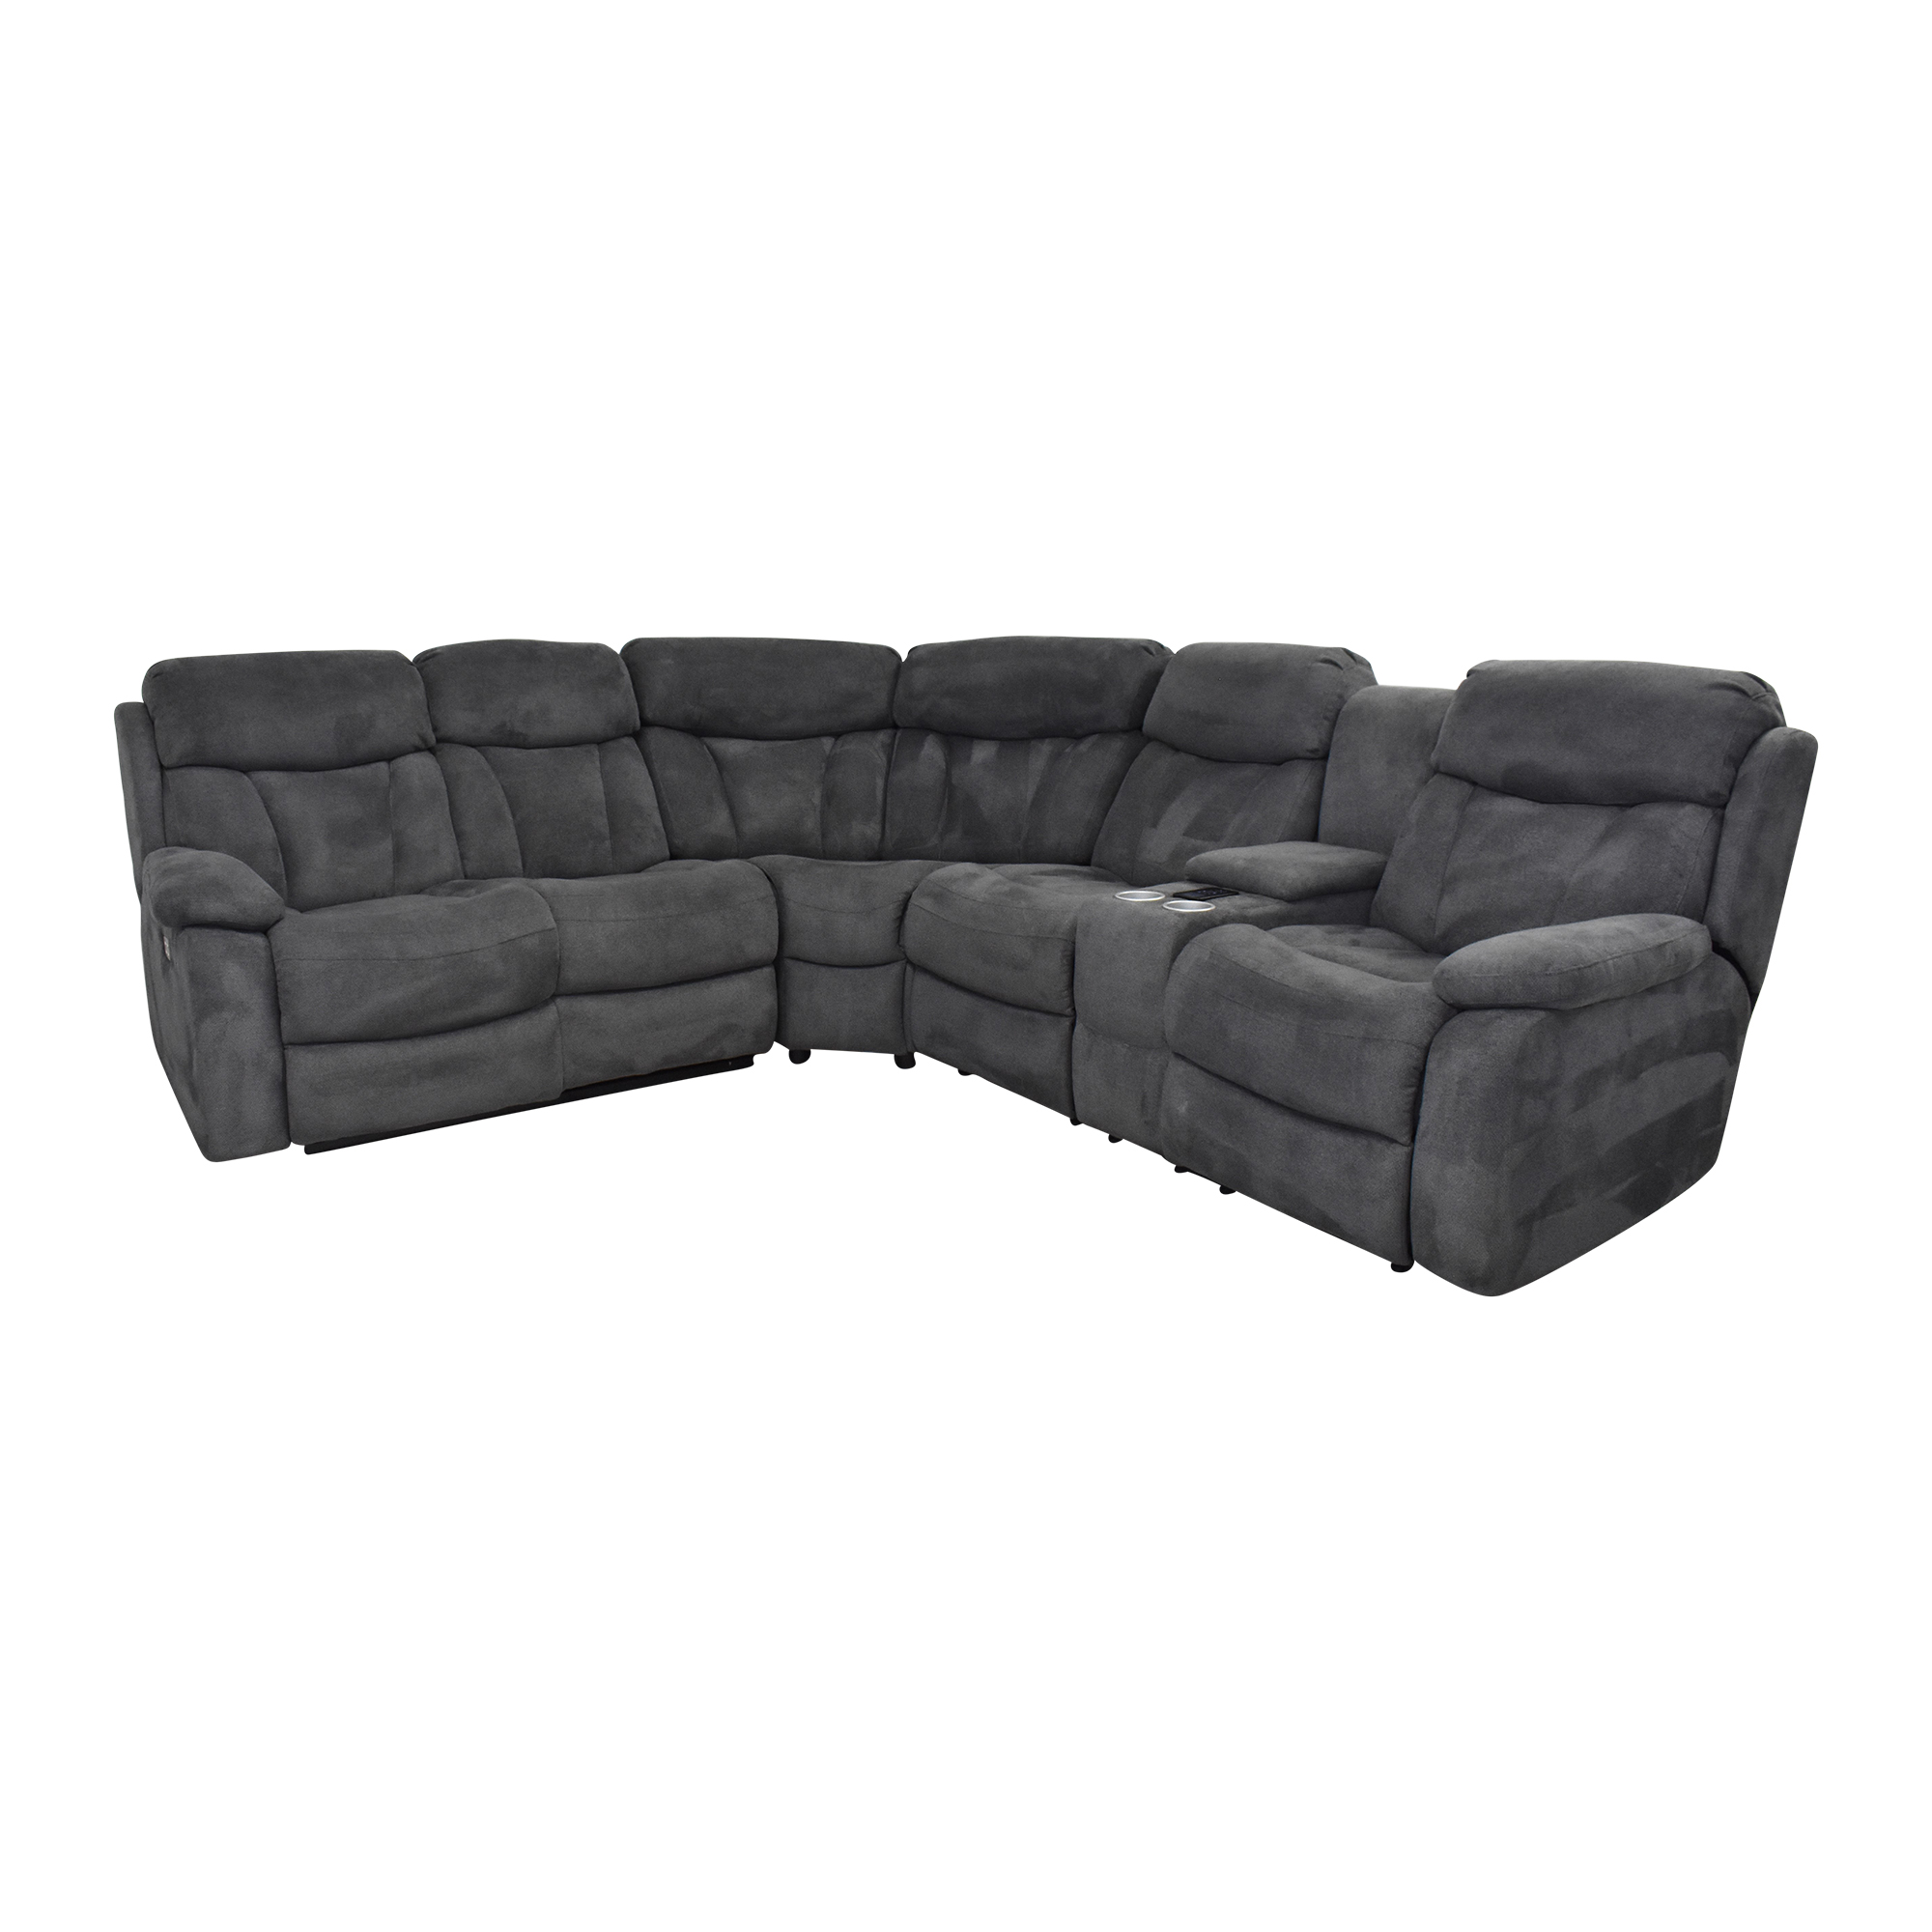 shop Raymour & Flanigan Connell Reclining Sectional Sofa Raymour & Flanigan